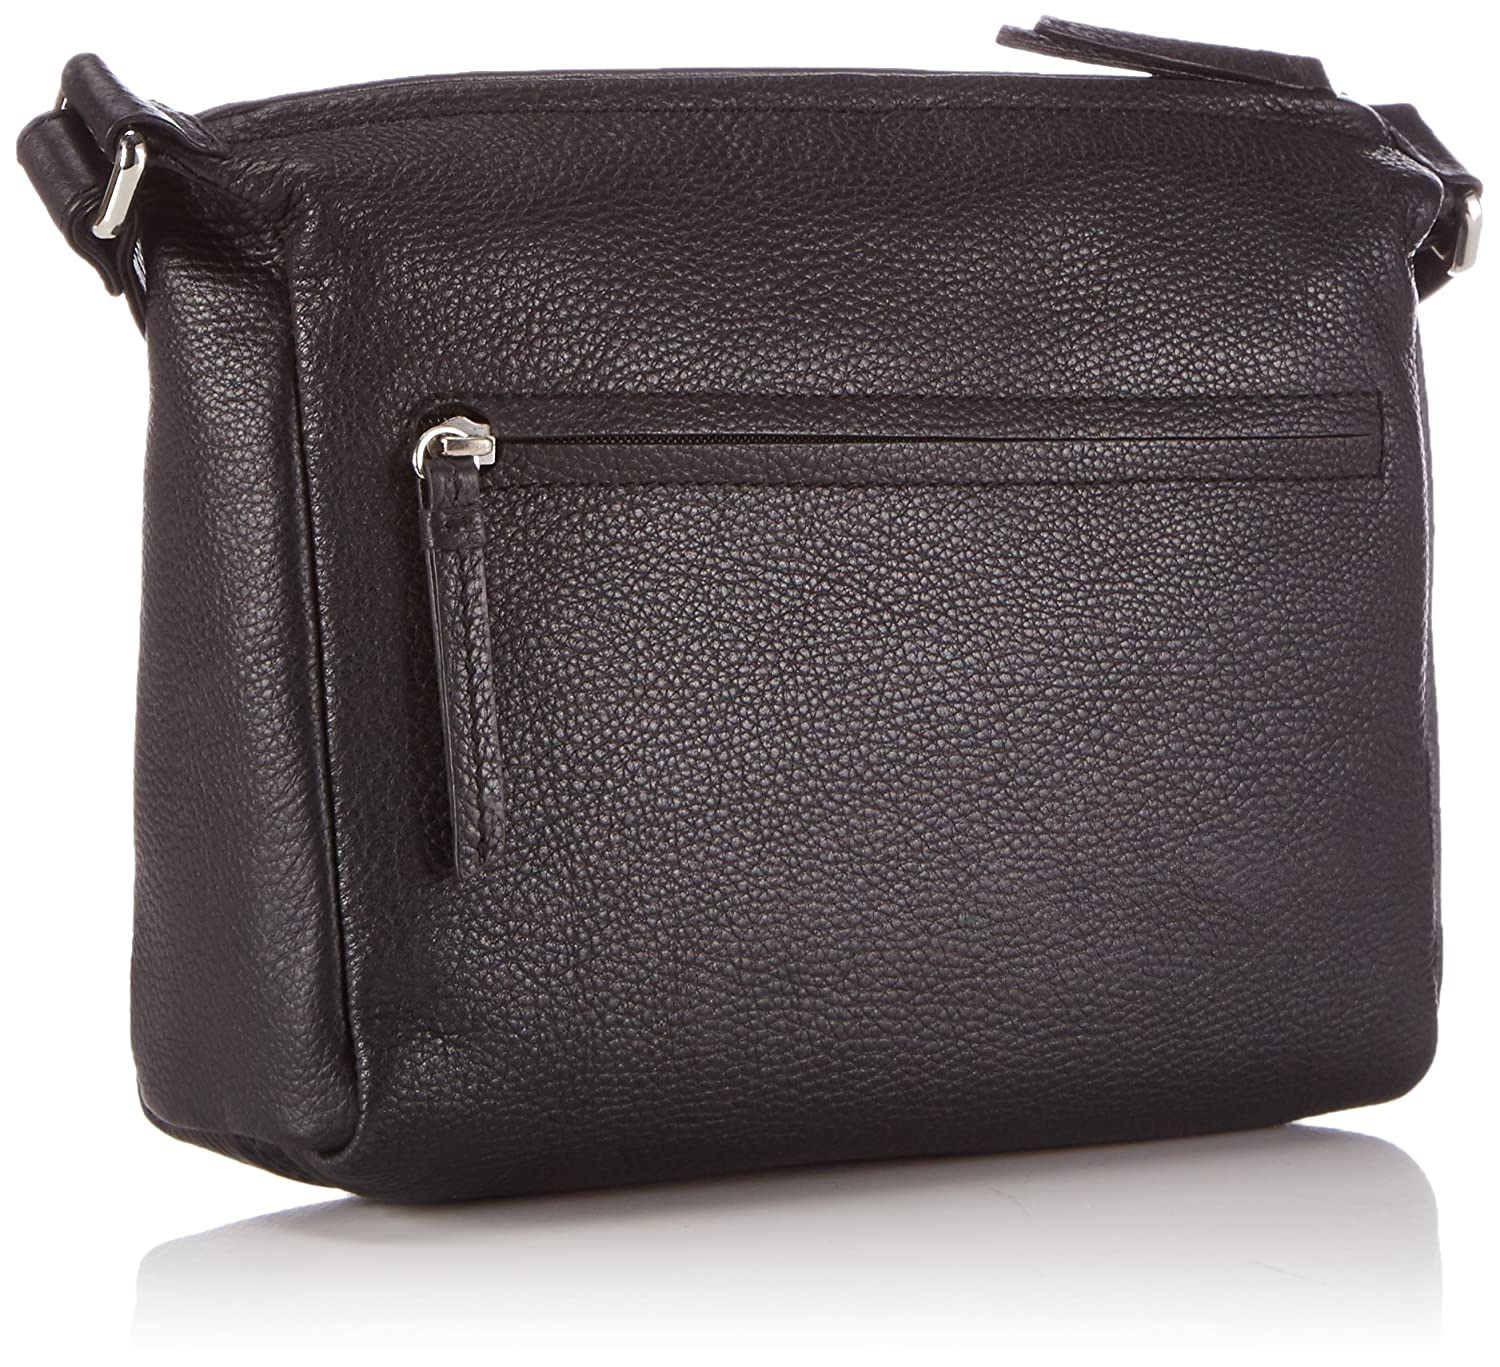 Bree Women 206002_26x7x20 cm (B x H x T) Top-handle Bag Size: 26x7x20 cm (B x H x T) Outlet Cheap Authentic Free Shipping Wiki Clearance Online Cheap Prices pBNigNwfOX